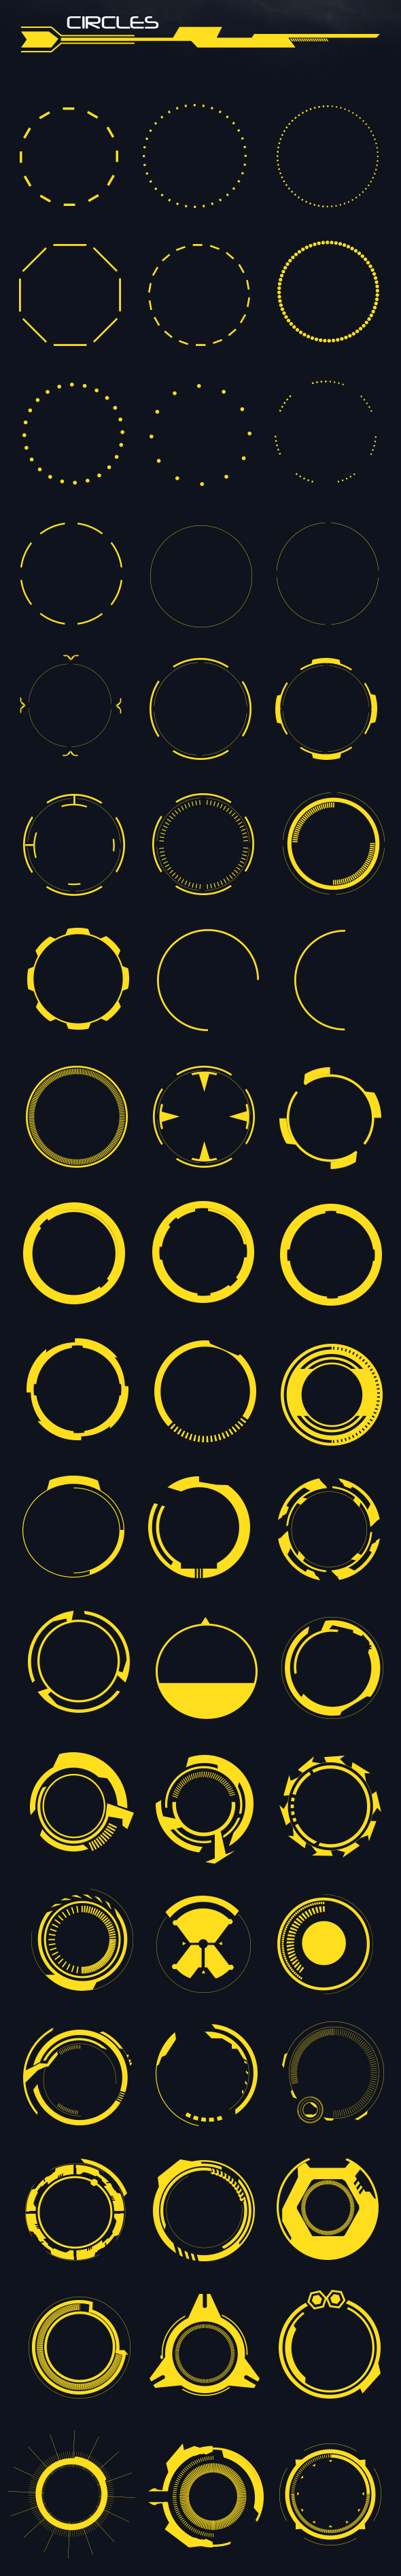 60 Hi-Tech Circles (Custom Shapes)